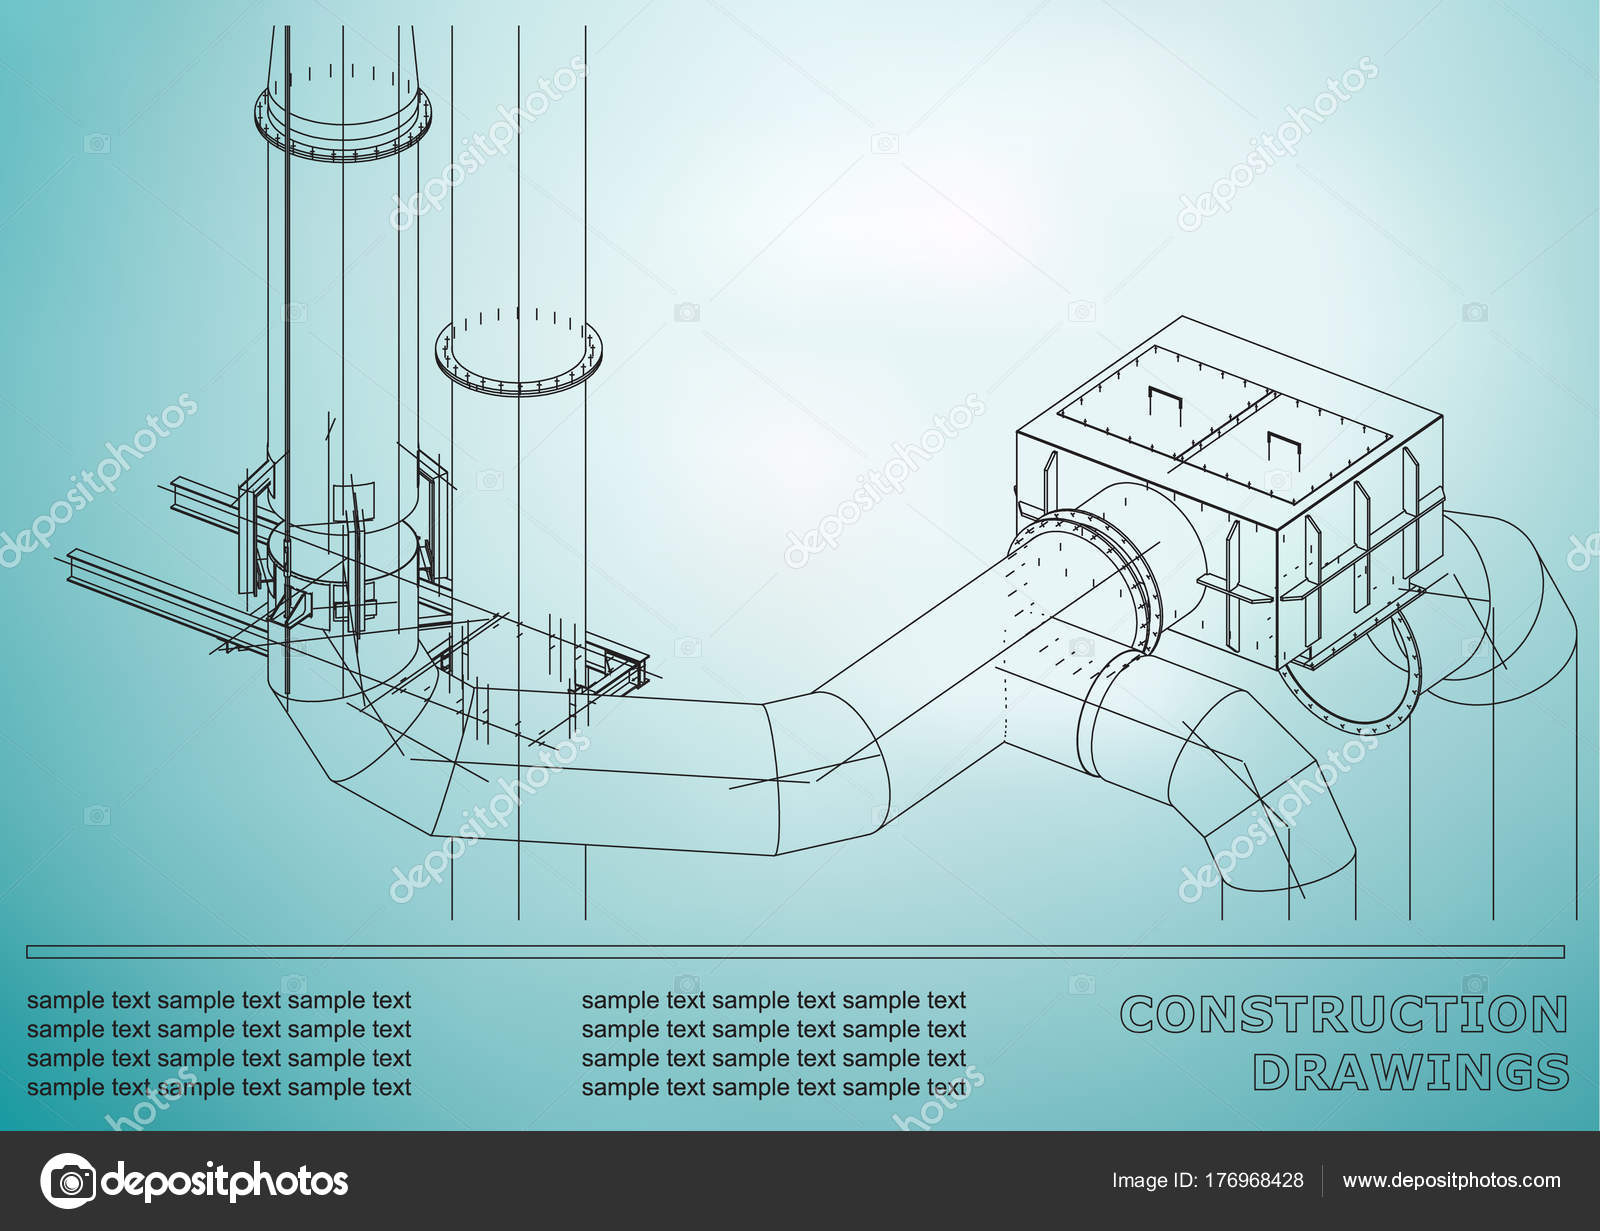 1600x1231 Construction Drawings Metal Construction Pipes Piping Cover